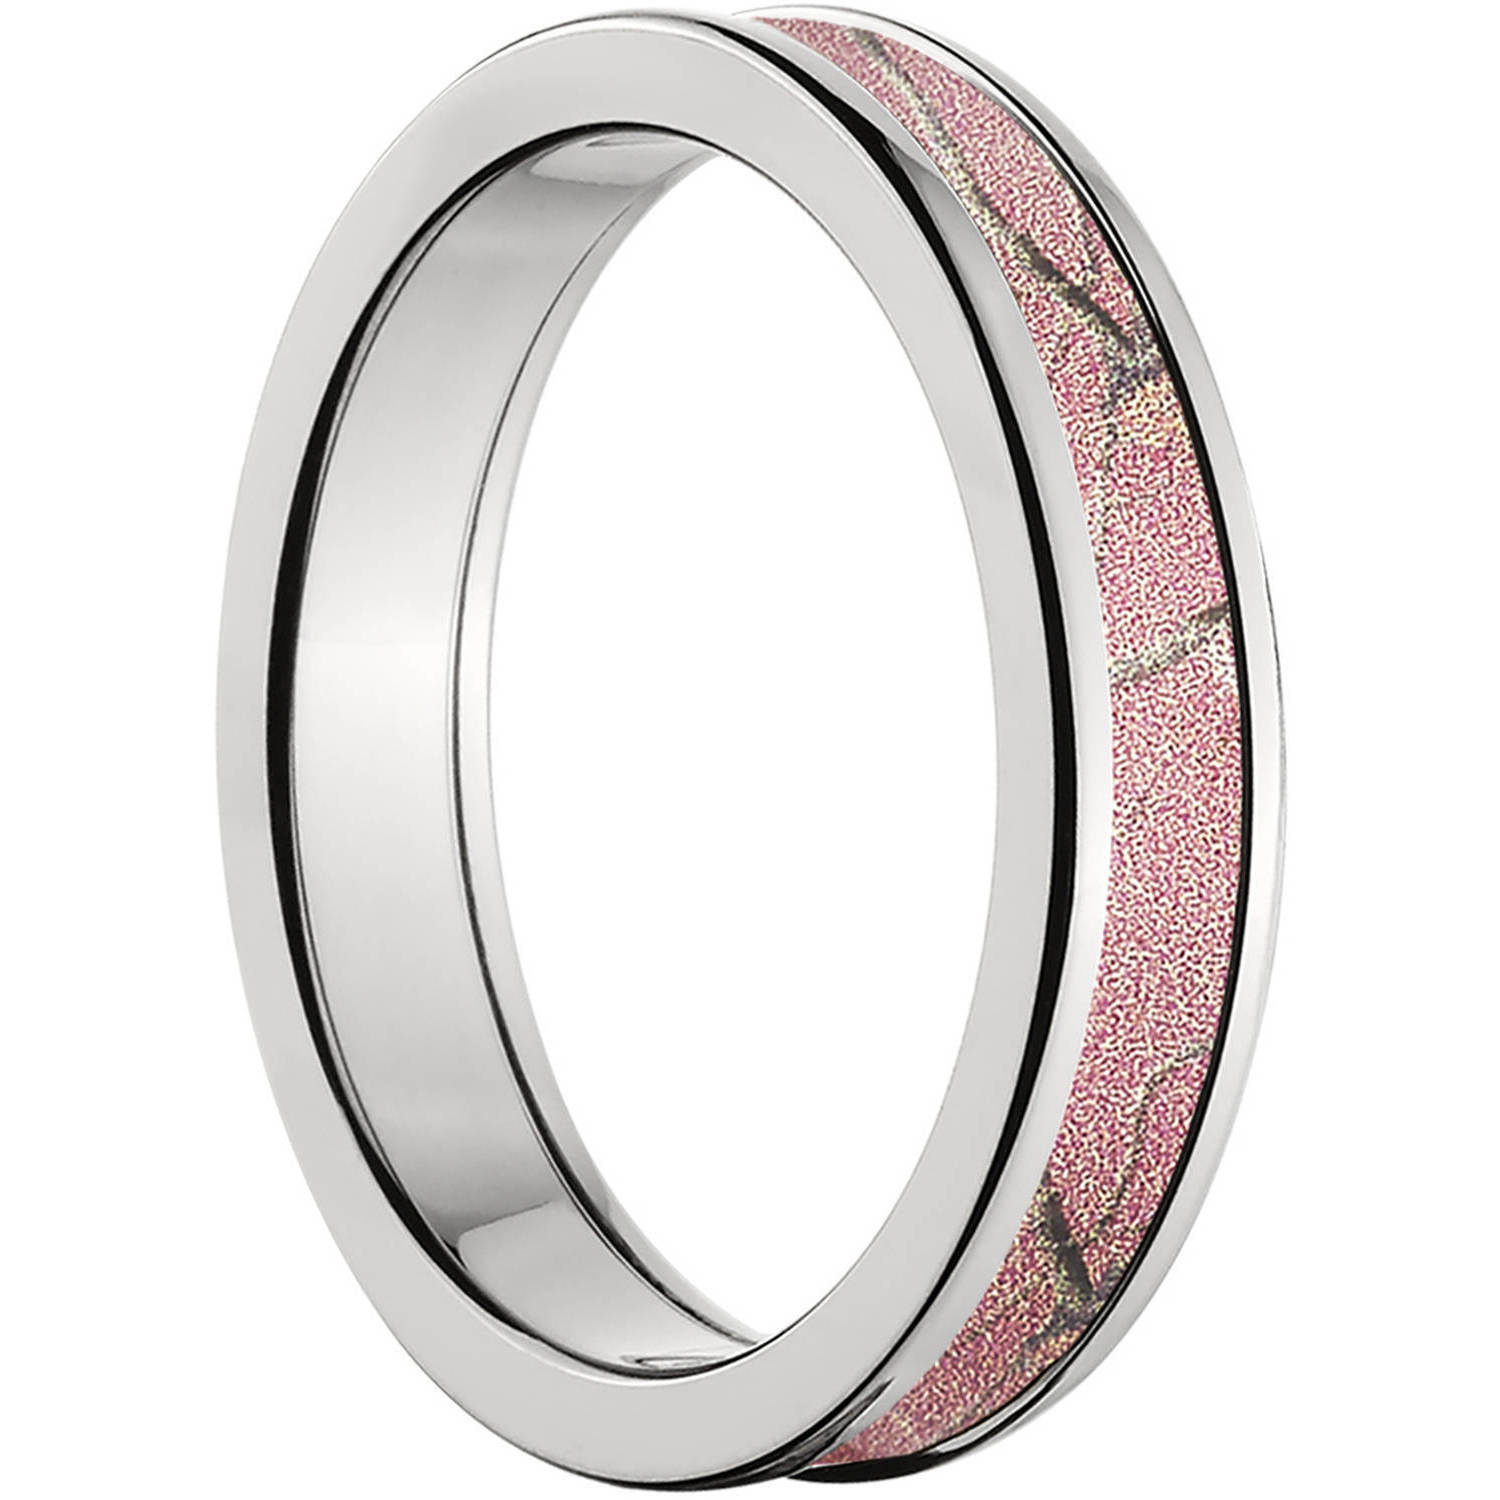 4mm Half Round Titanium Ring with a RealTree Pink Camo Inlay